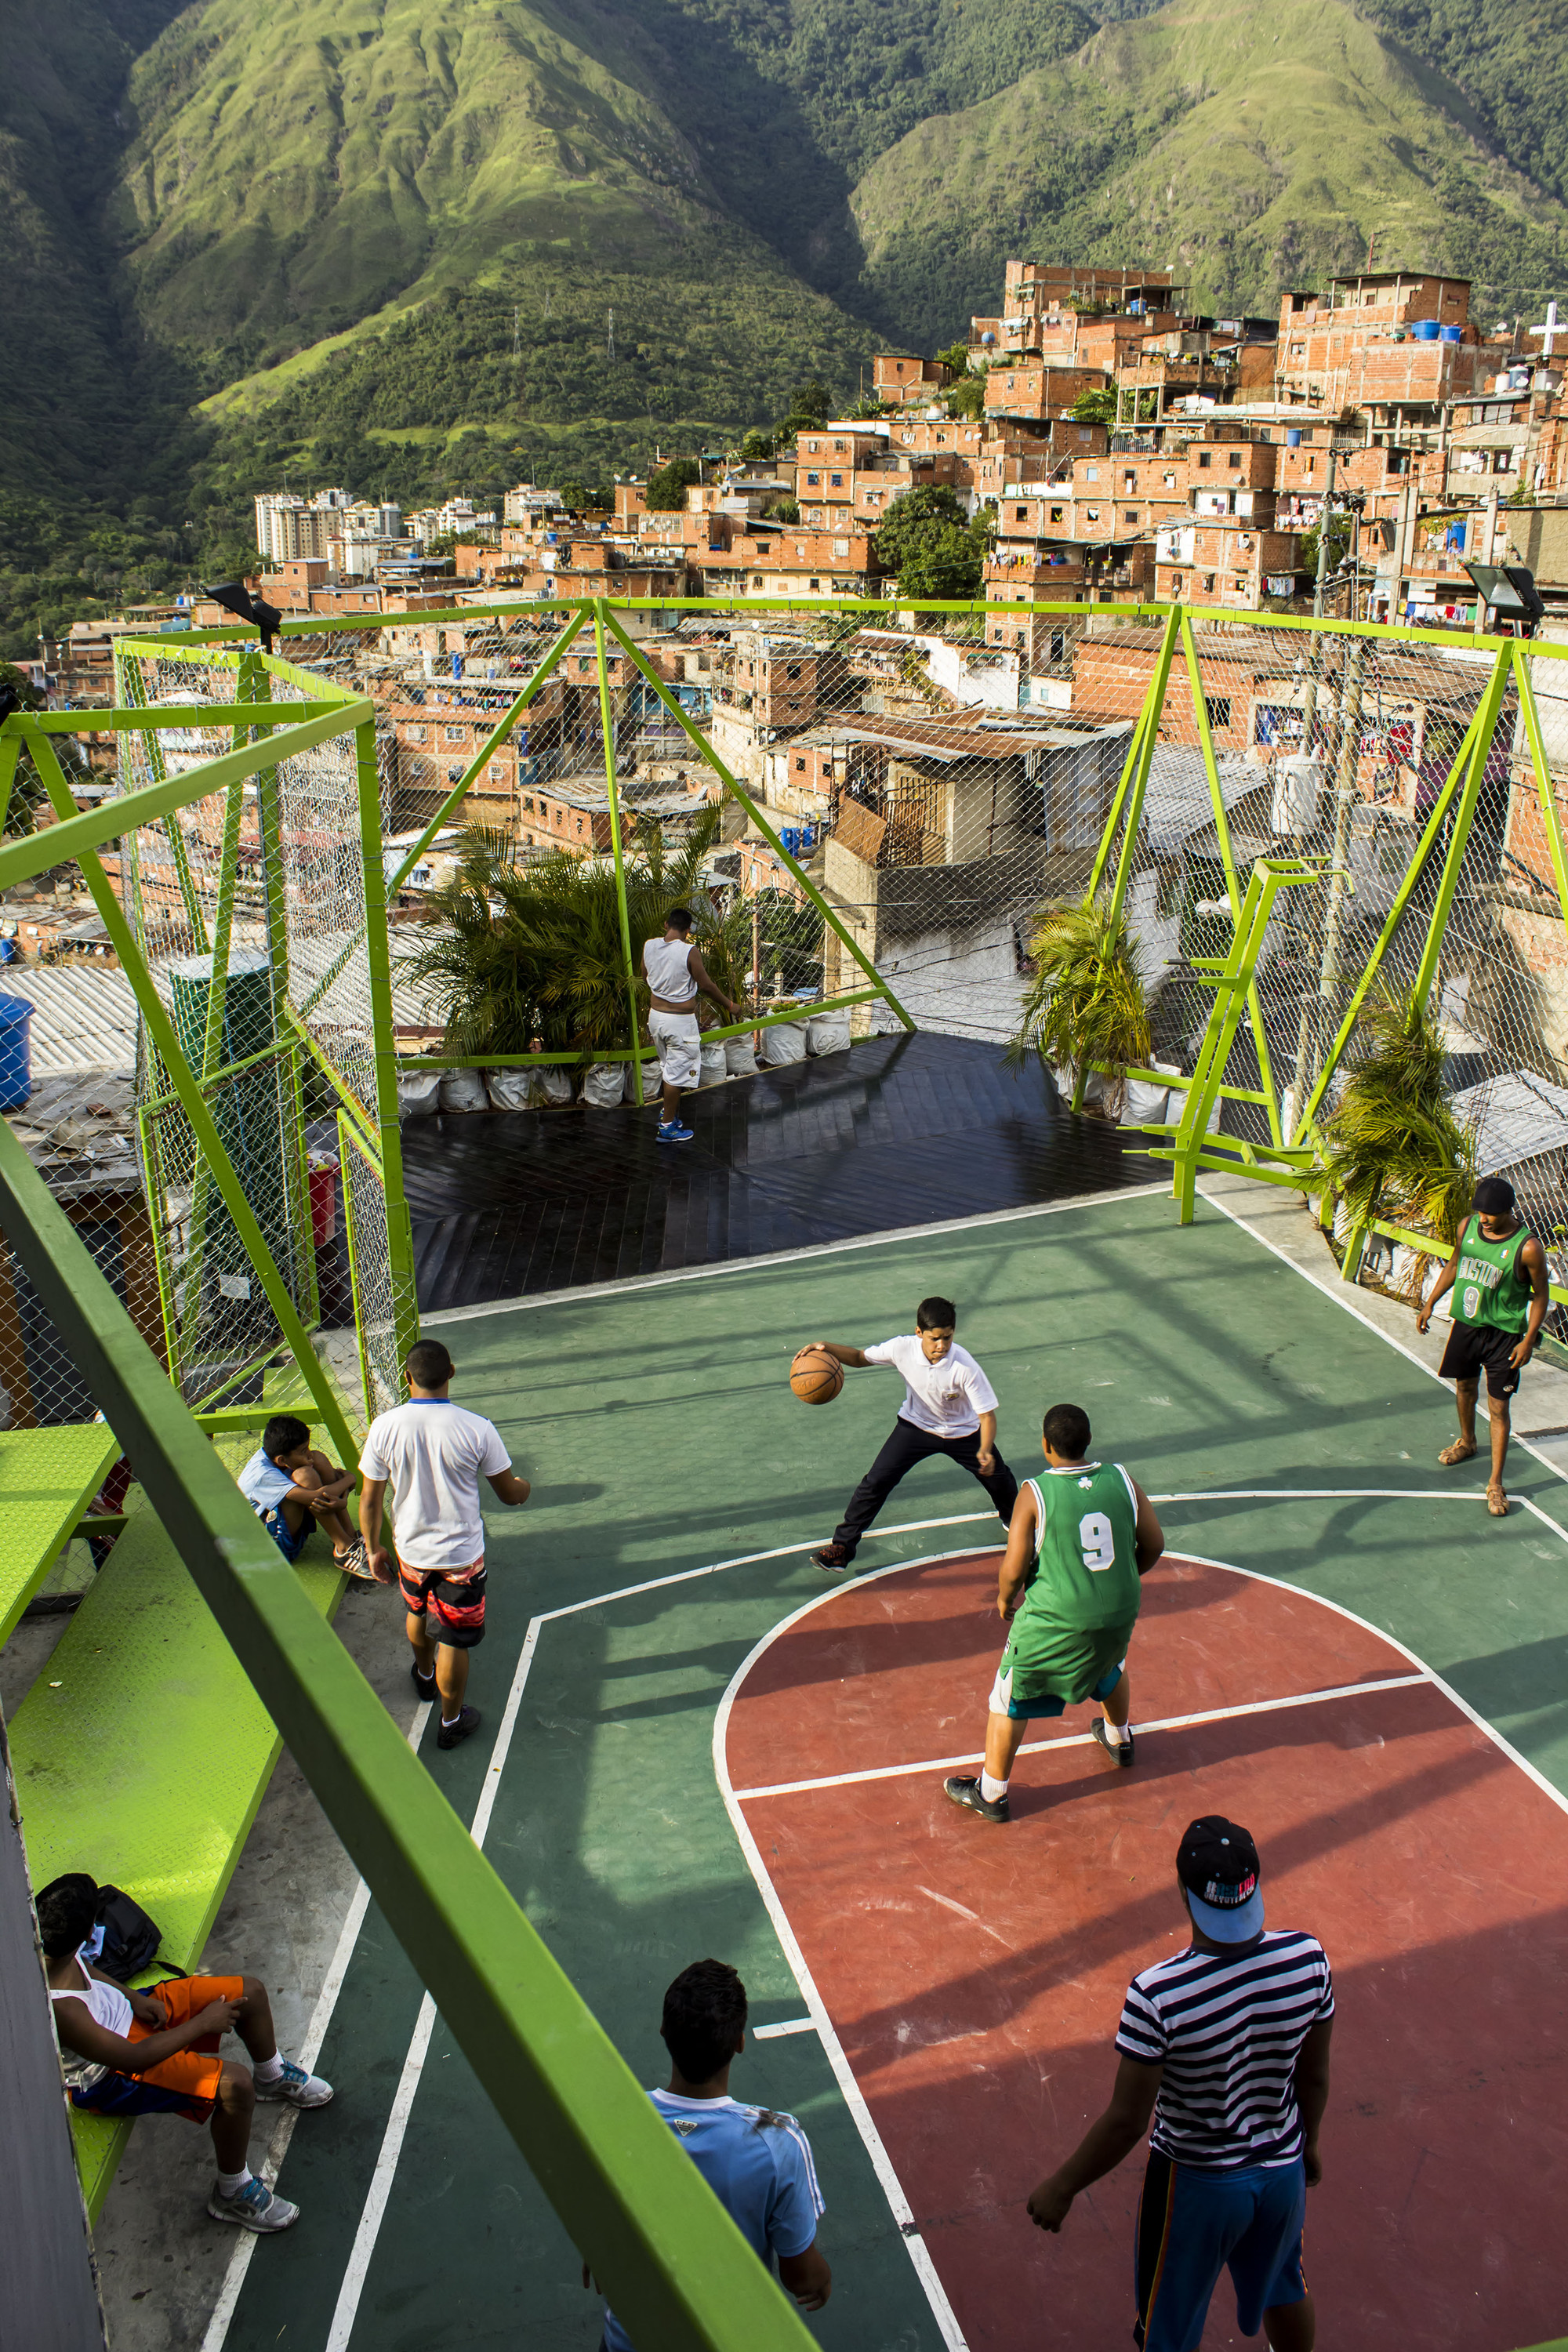 How Venezuela's Espacios de Paz Project is Transforming Community Spaces